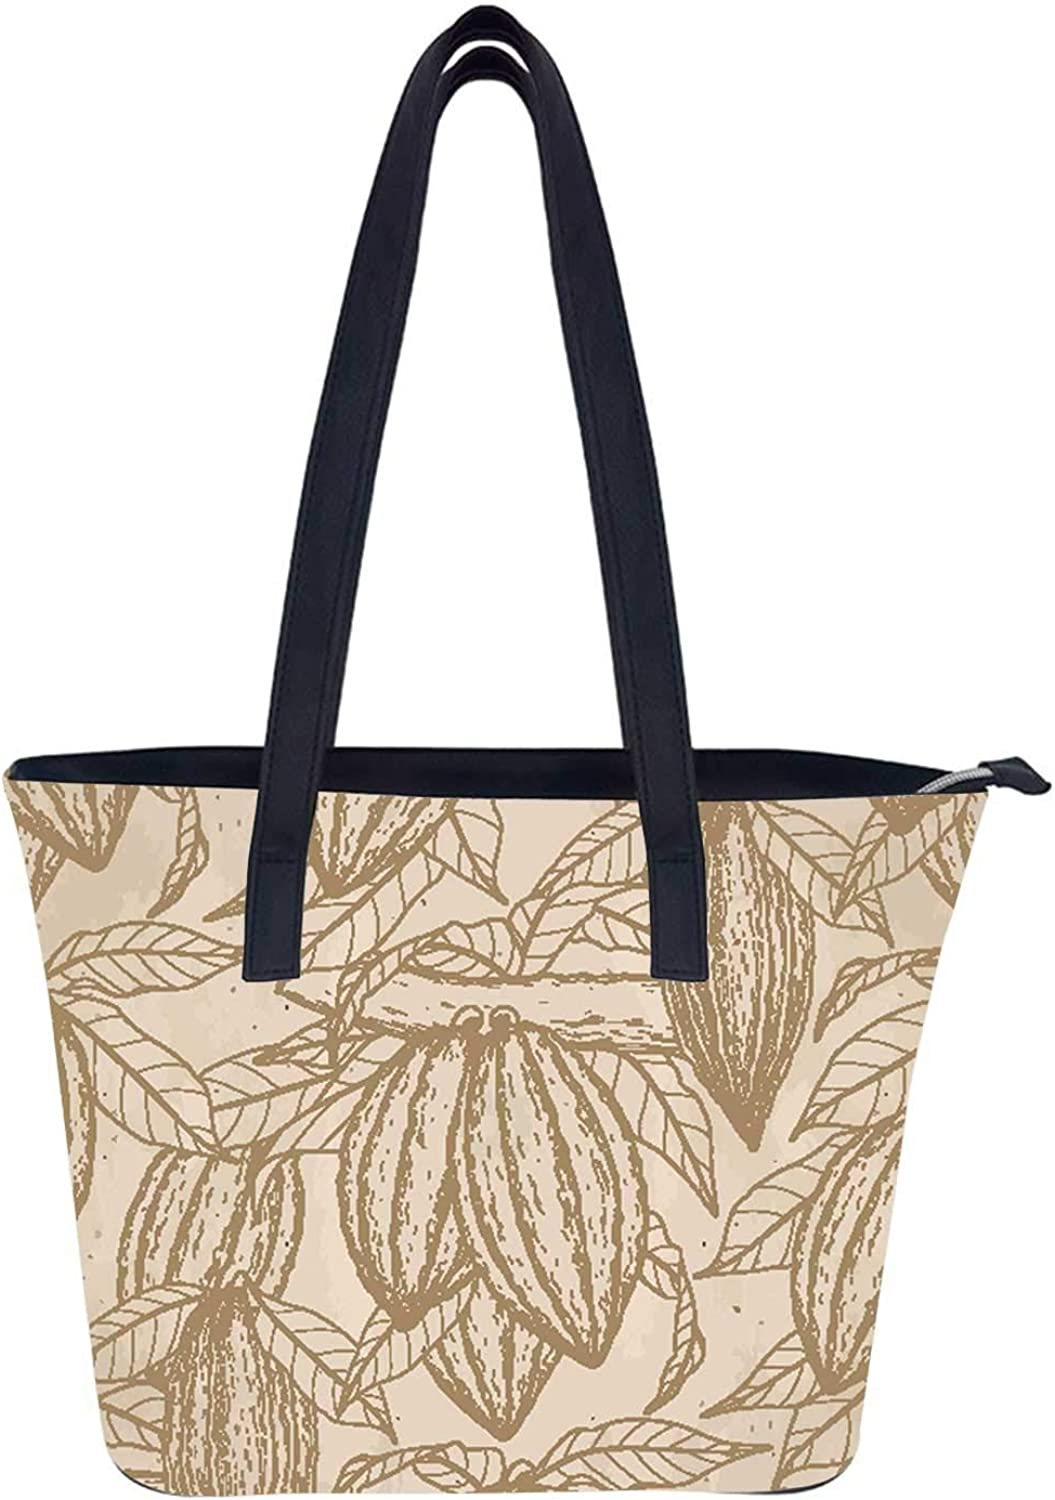 Texas Bluebonnet Filed and Blue Sky Women Ennis for in Ranking TOP6 Max 68% OFF Handbags